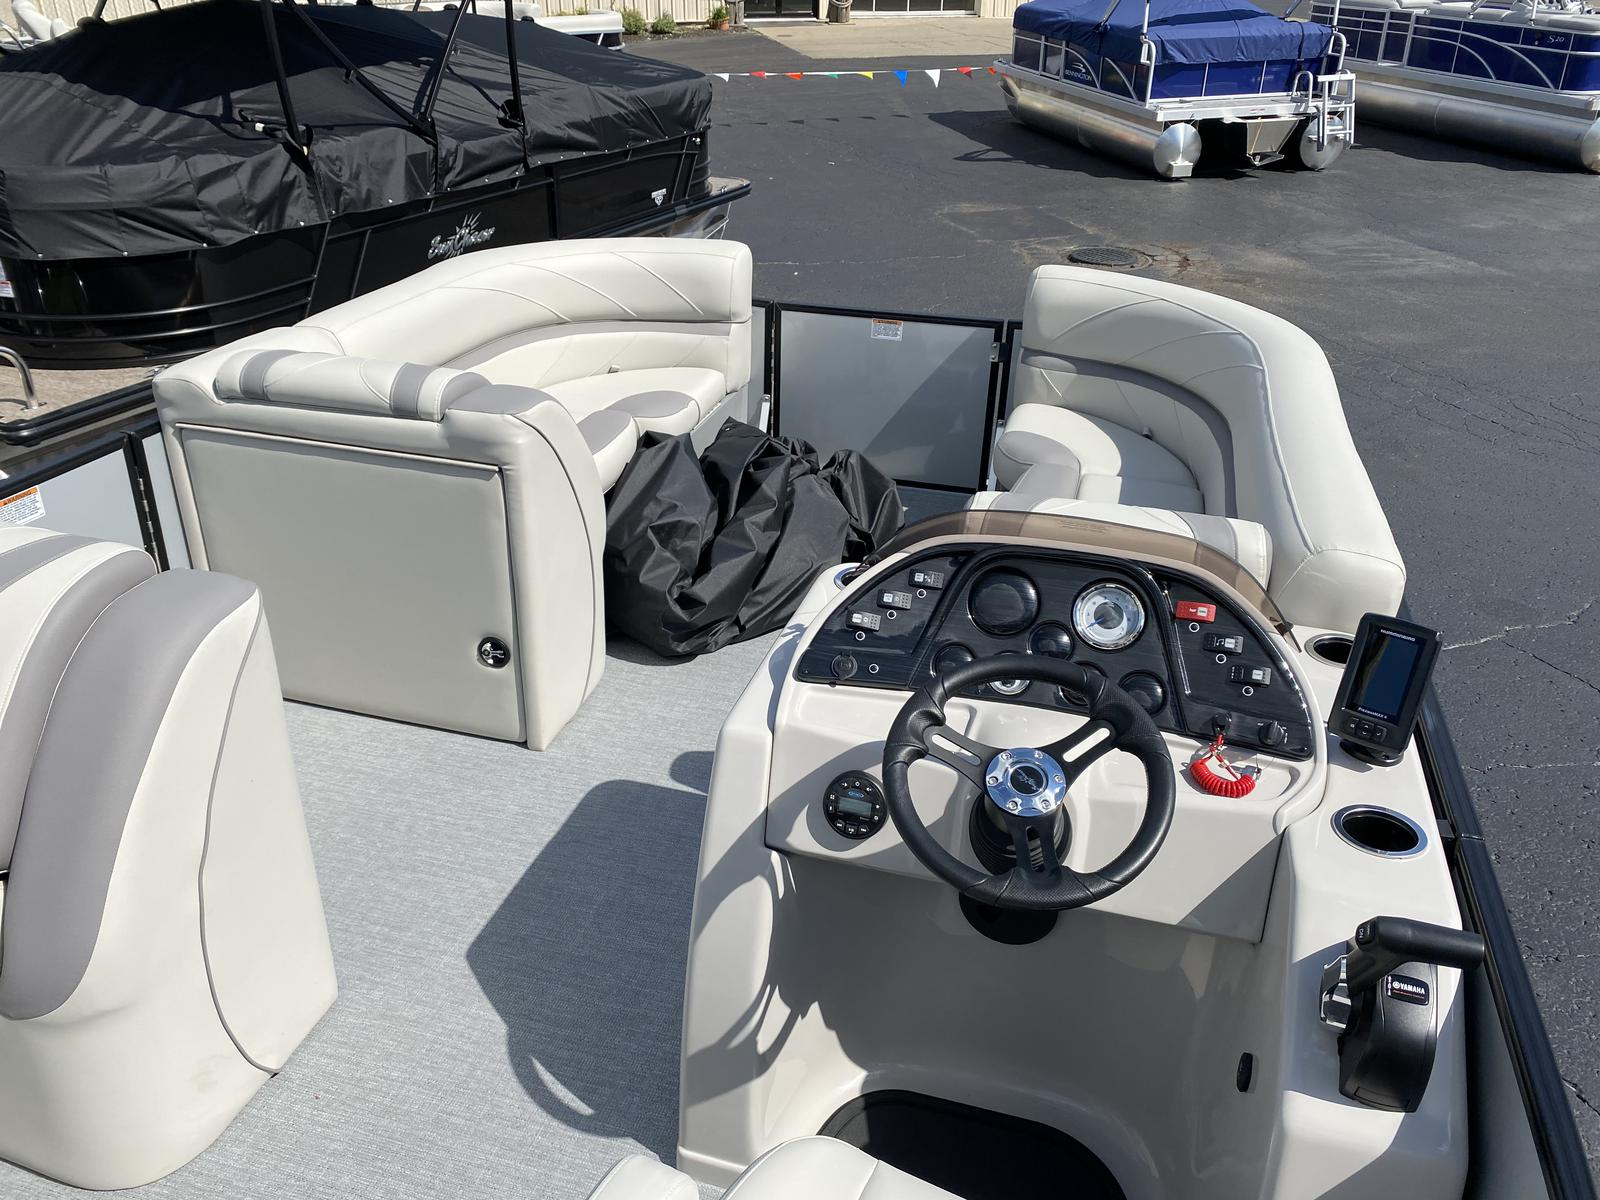 2020 SunChaser boat for sale, model of the boat is Geneva Cruise 22 SB & Image # 11 of 12